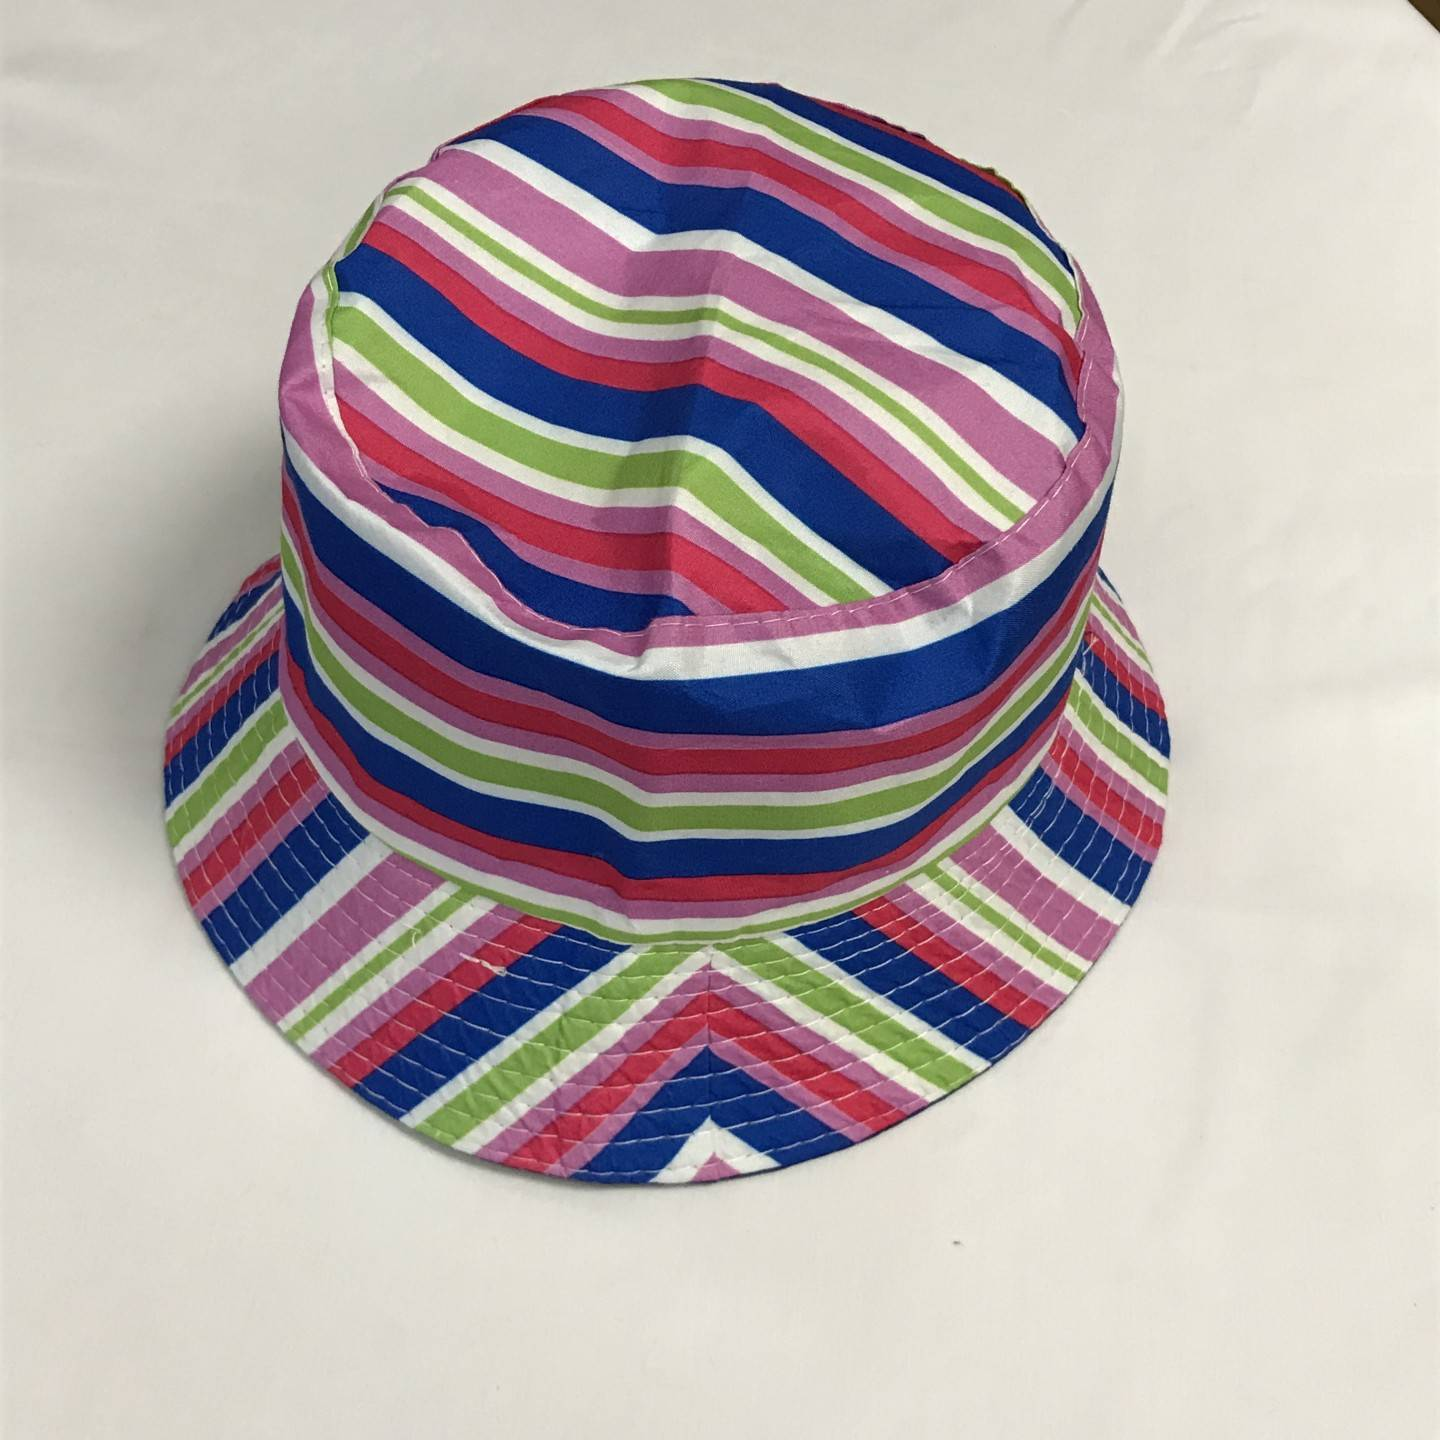 PINK AND BLUE REVERSIBLE BUCKET HAT AGES 12+